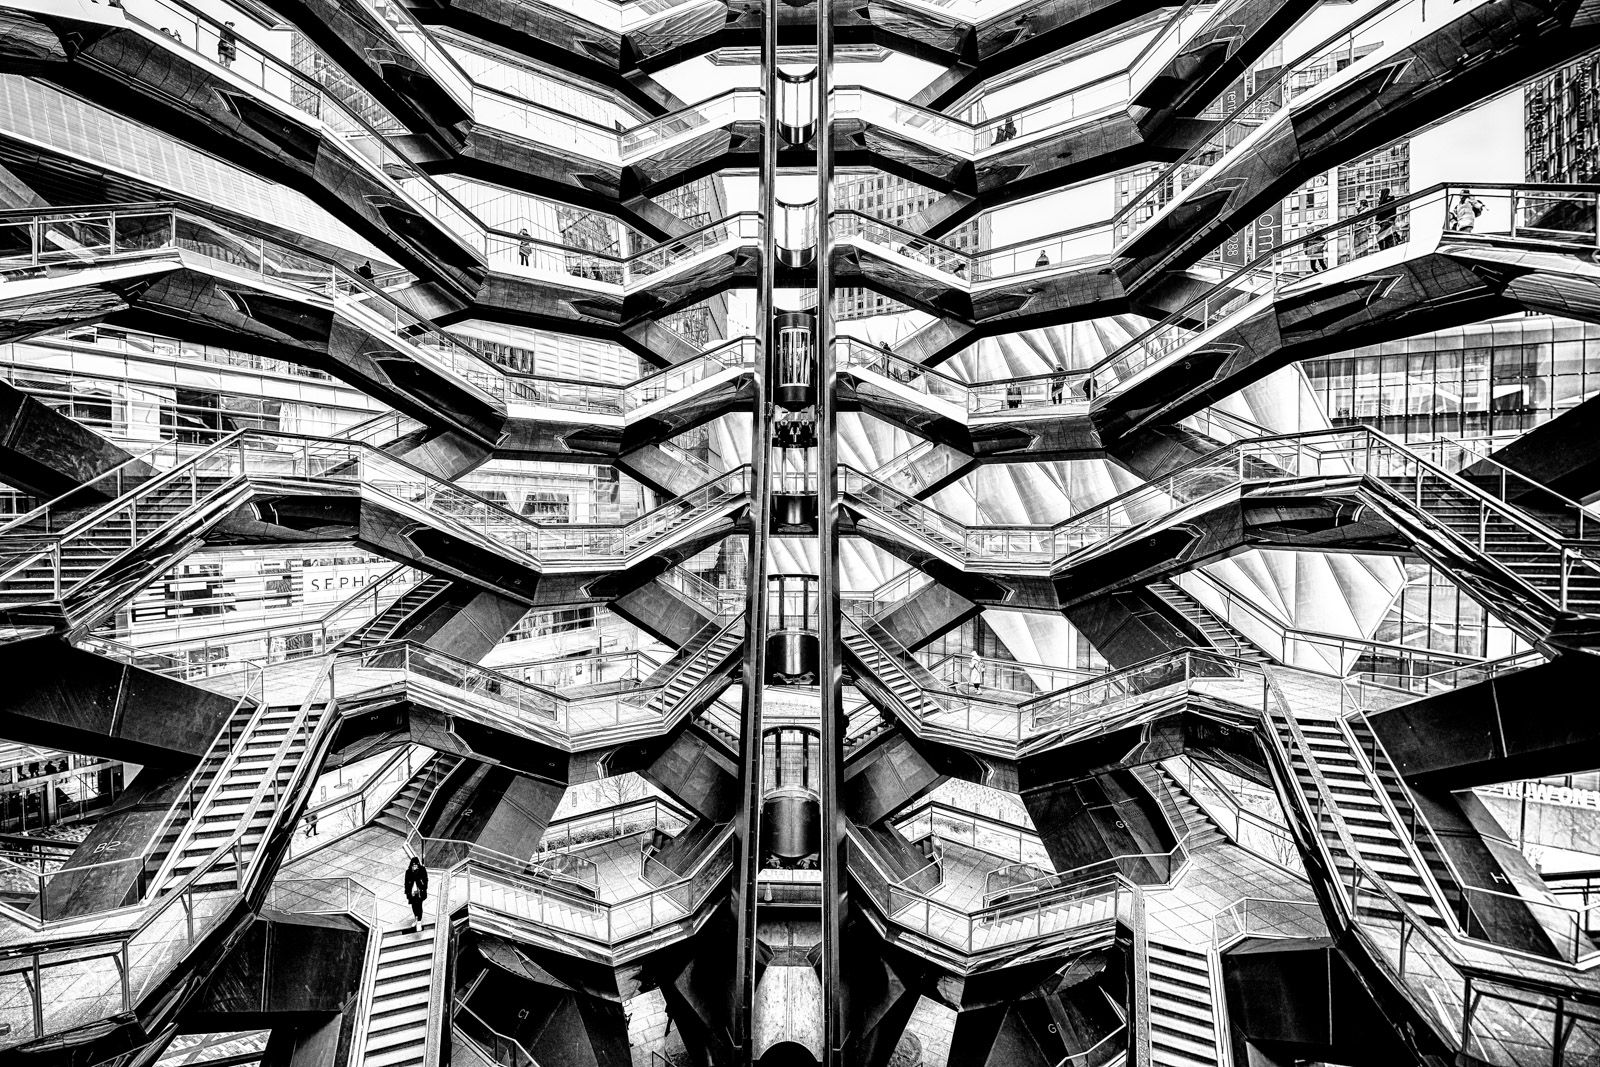 """Inside of the """"Vessel"""" at Hudson Yards, New York. Available Print Sizes: 12x18, 16x24, 20x30, 24x36, 30x45, 40x60Limited Edition..."""